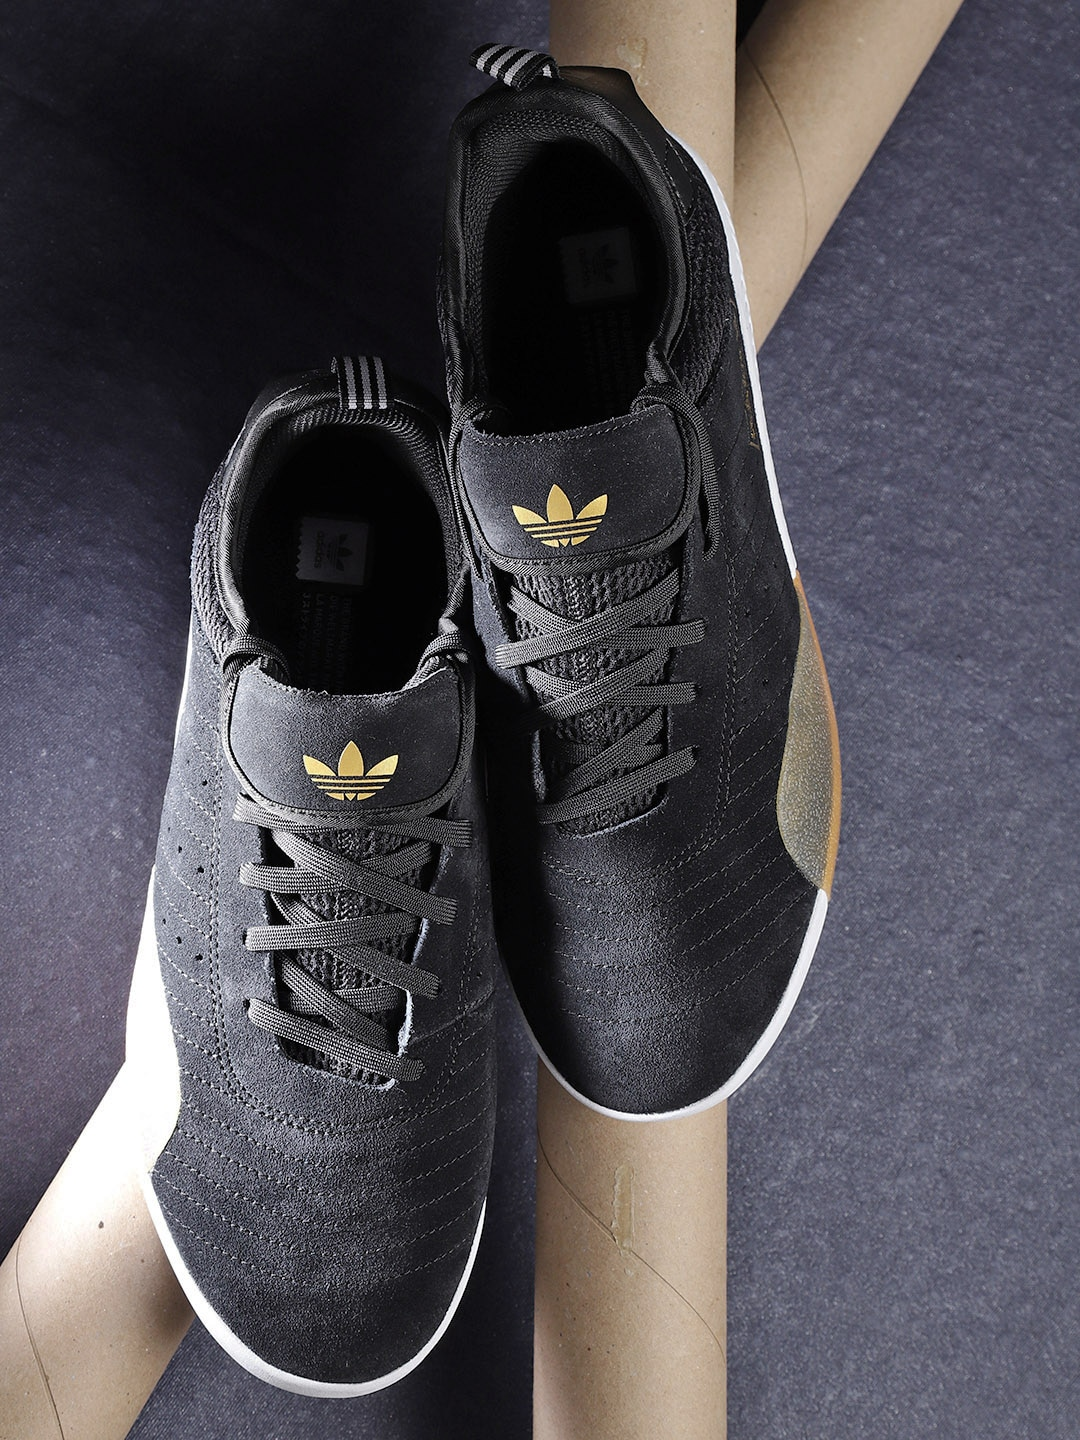 adidas - Exclusive adidas Online Store in India at Myntra 8aea343ff5a02